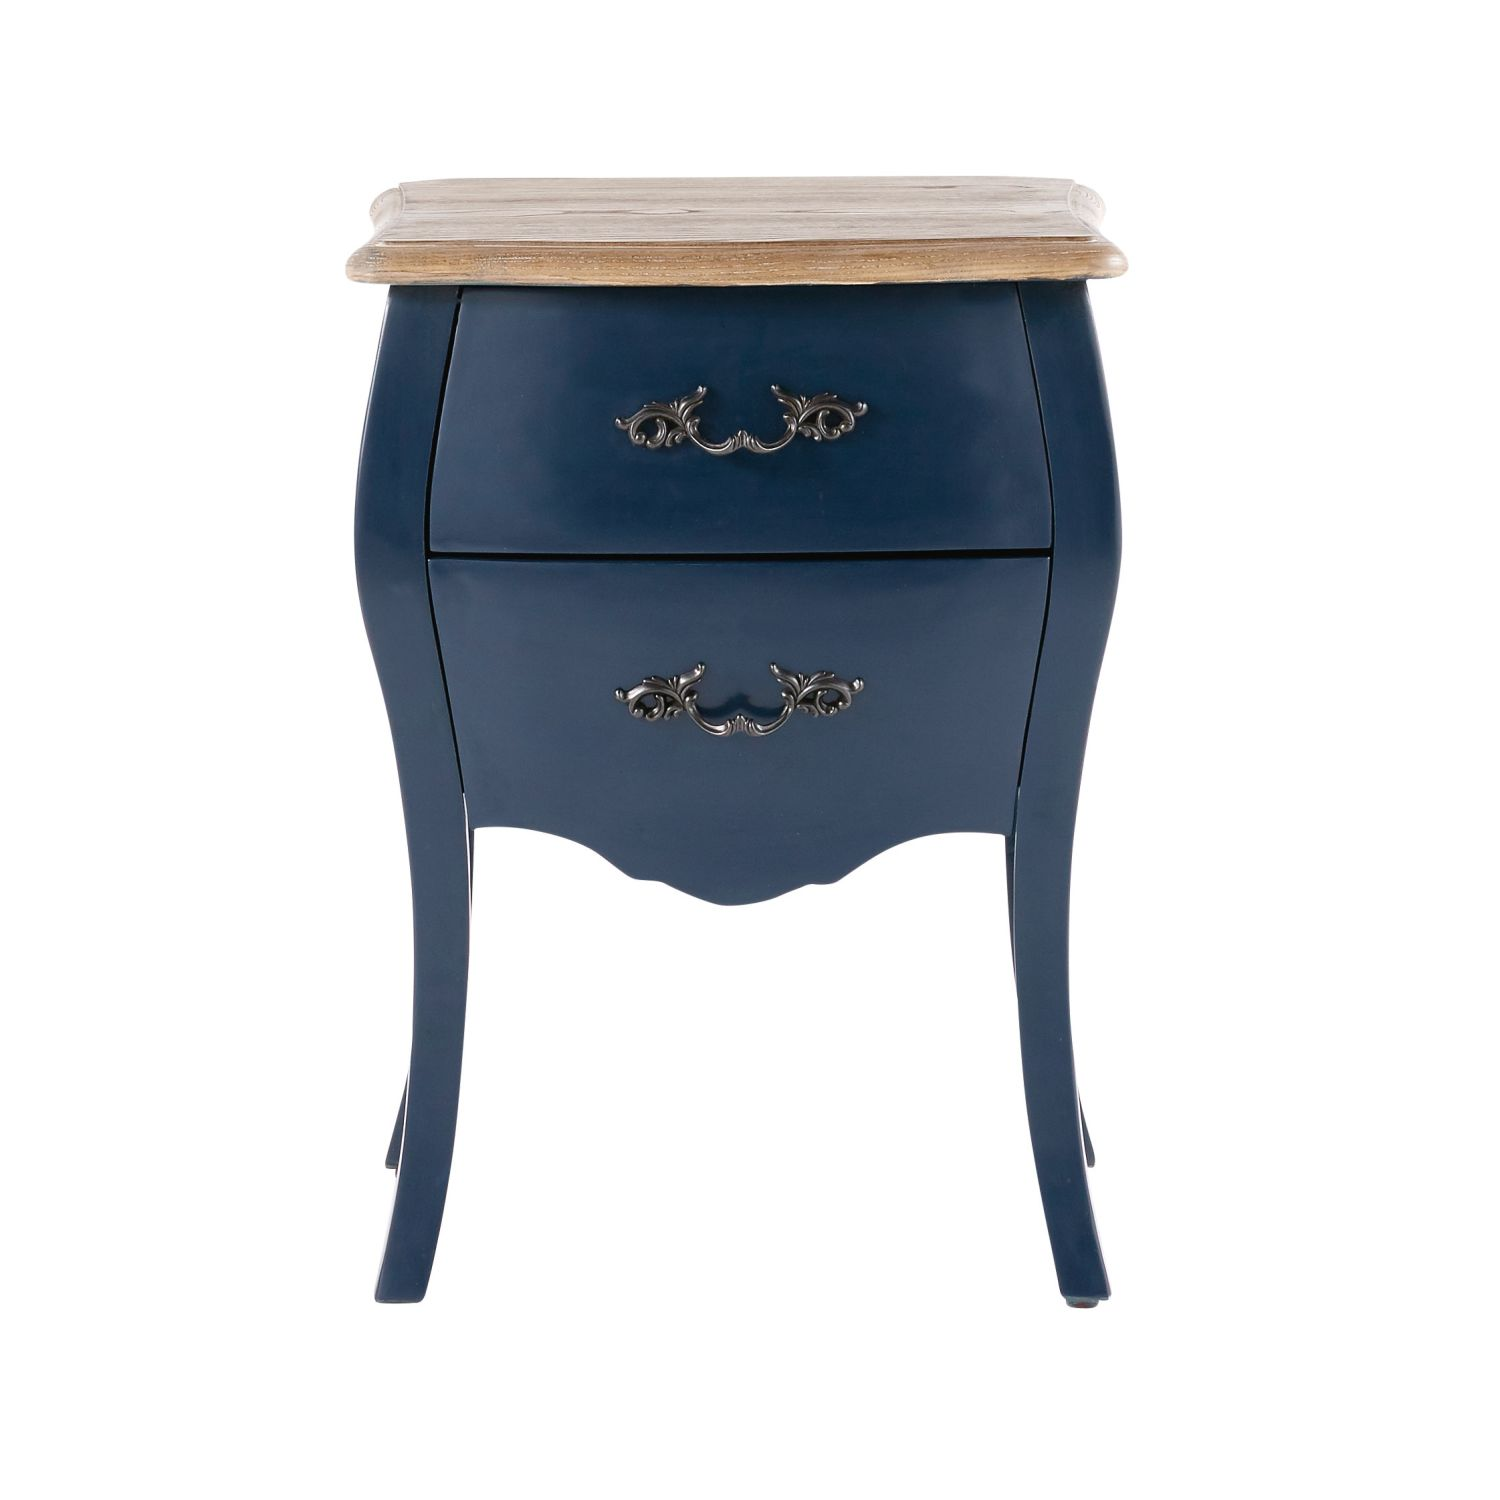 table de chevet 2 tiroirs bleu nuit maisons du monde. Black Bedroom Furniture Sets. Home Design Ideas